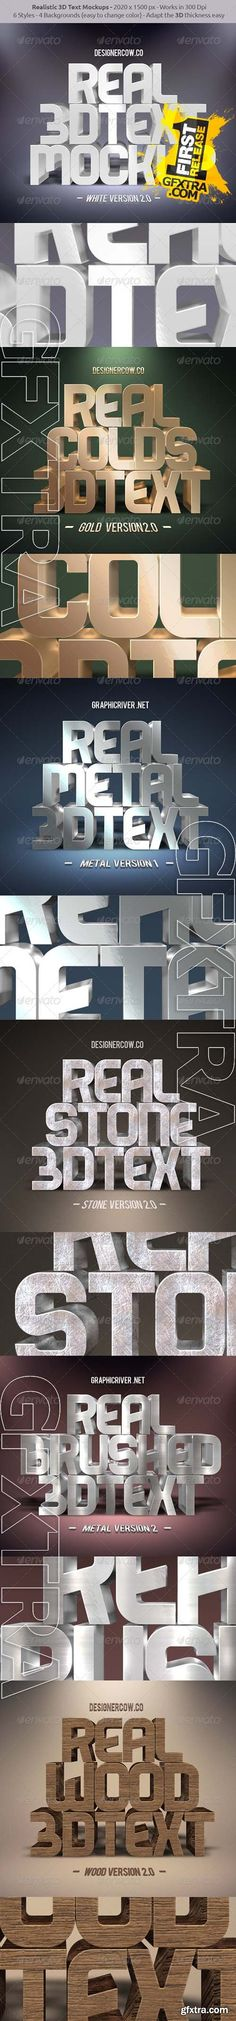 Real 3D Text Mockups - Graphicriver 8553107